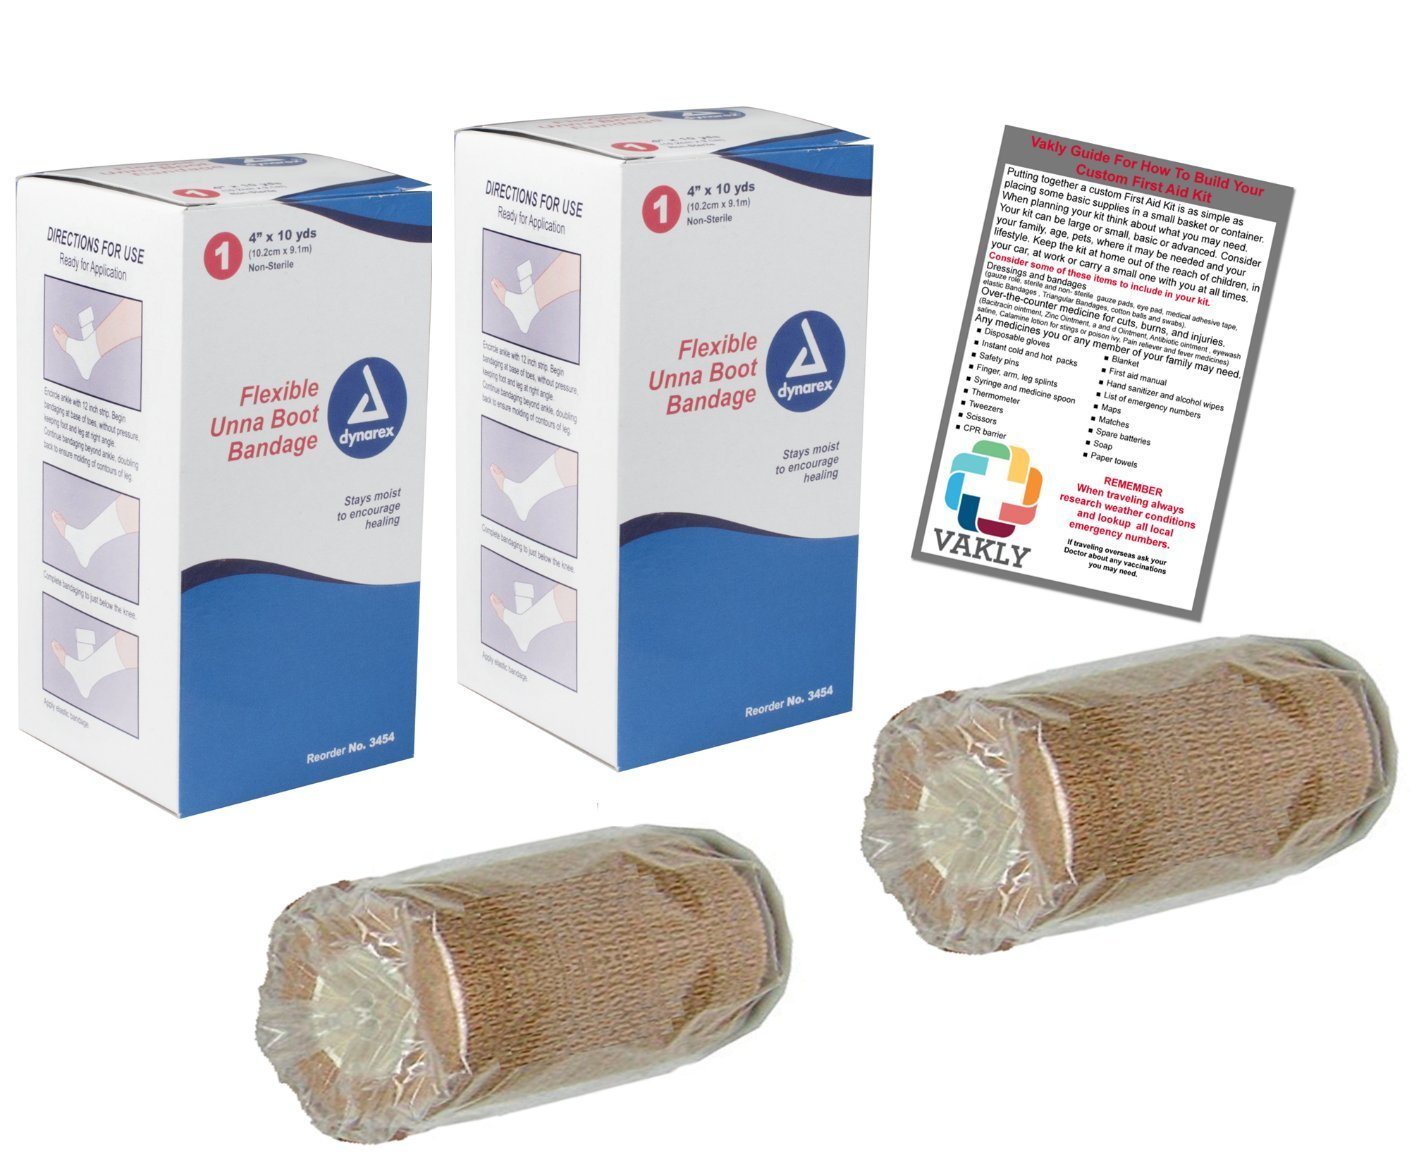 """4"""" Unna Boot Bandage with Zinc Oxide + Self Adhesive Wrap (2 of Each) + Vakly 1st Aid Kit Guide"""